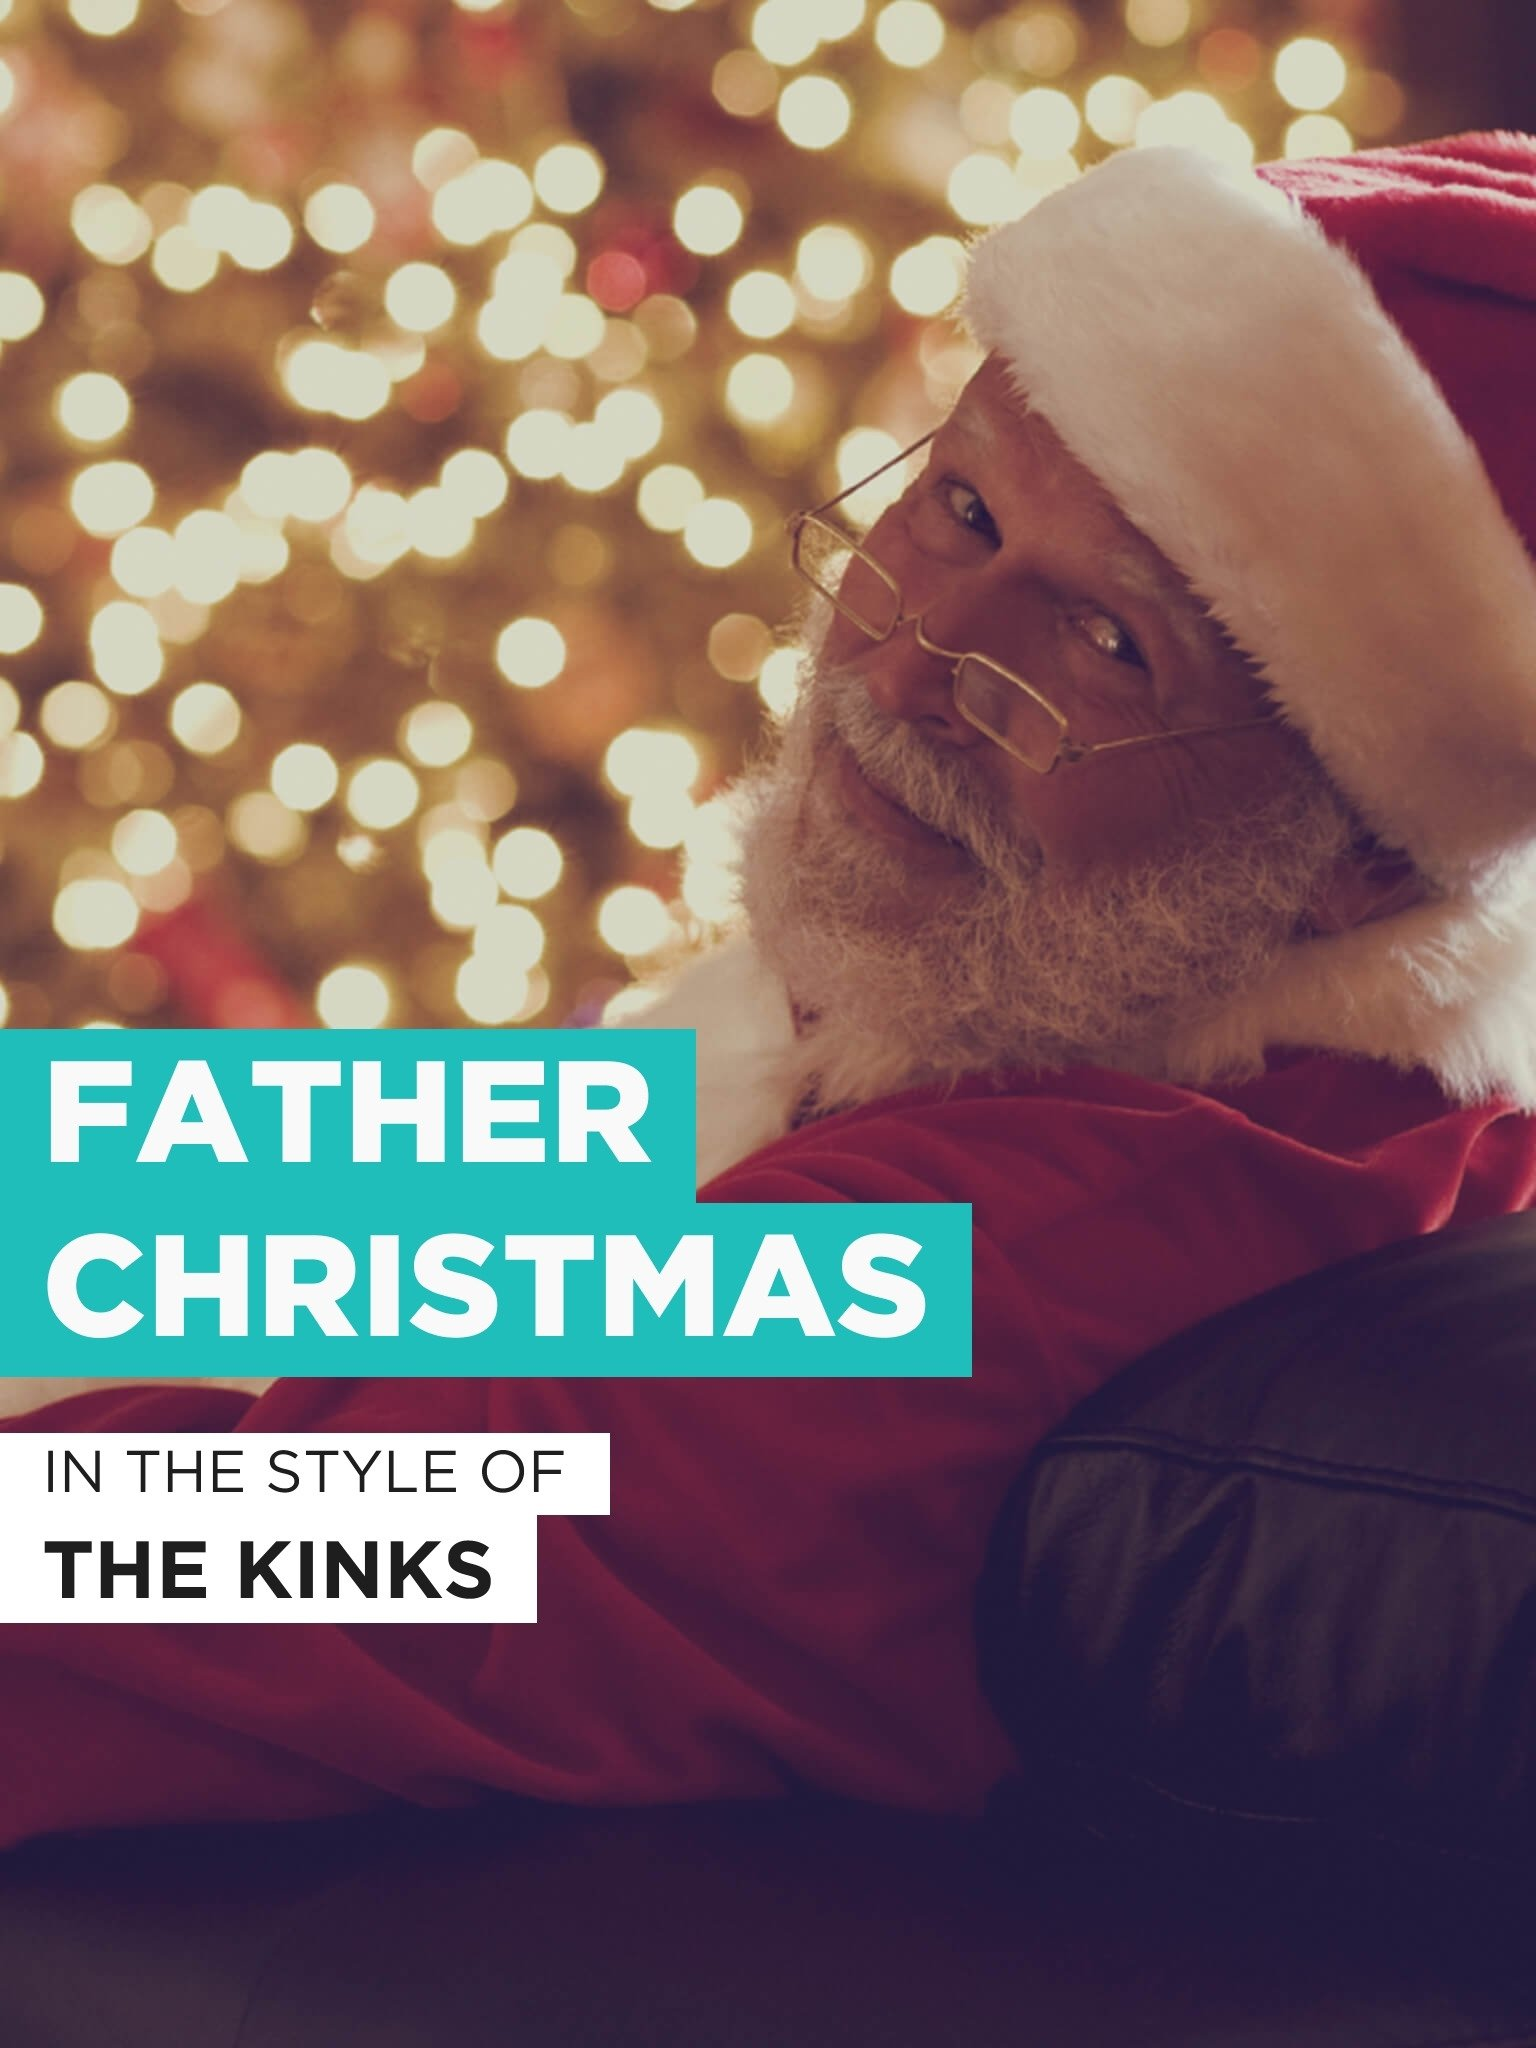 Amazon.com: Father Christmas: The Kinks, Not specifed, R Davies